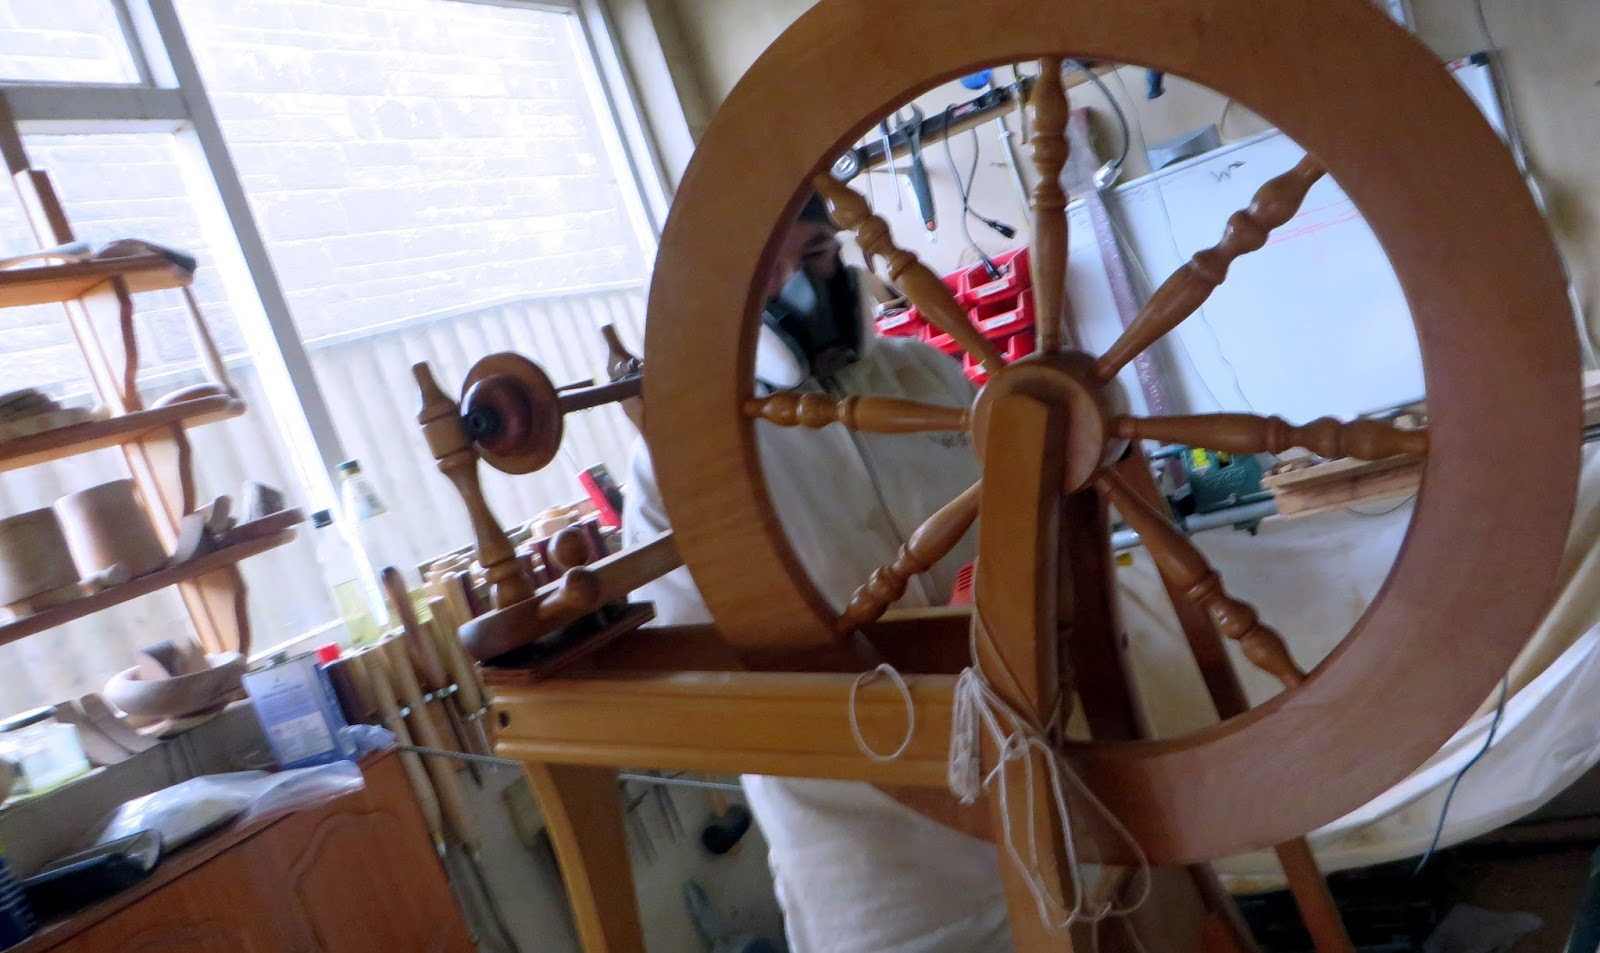 ... Wheel Deserved A Really Good Make Over And A Bit Of Pampering To Start  The New Year Of Spinning  So A Visit To Wright Turned Workshop (aka  Skipper).